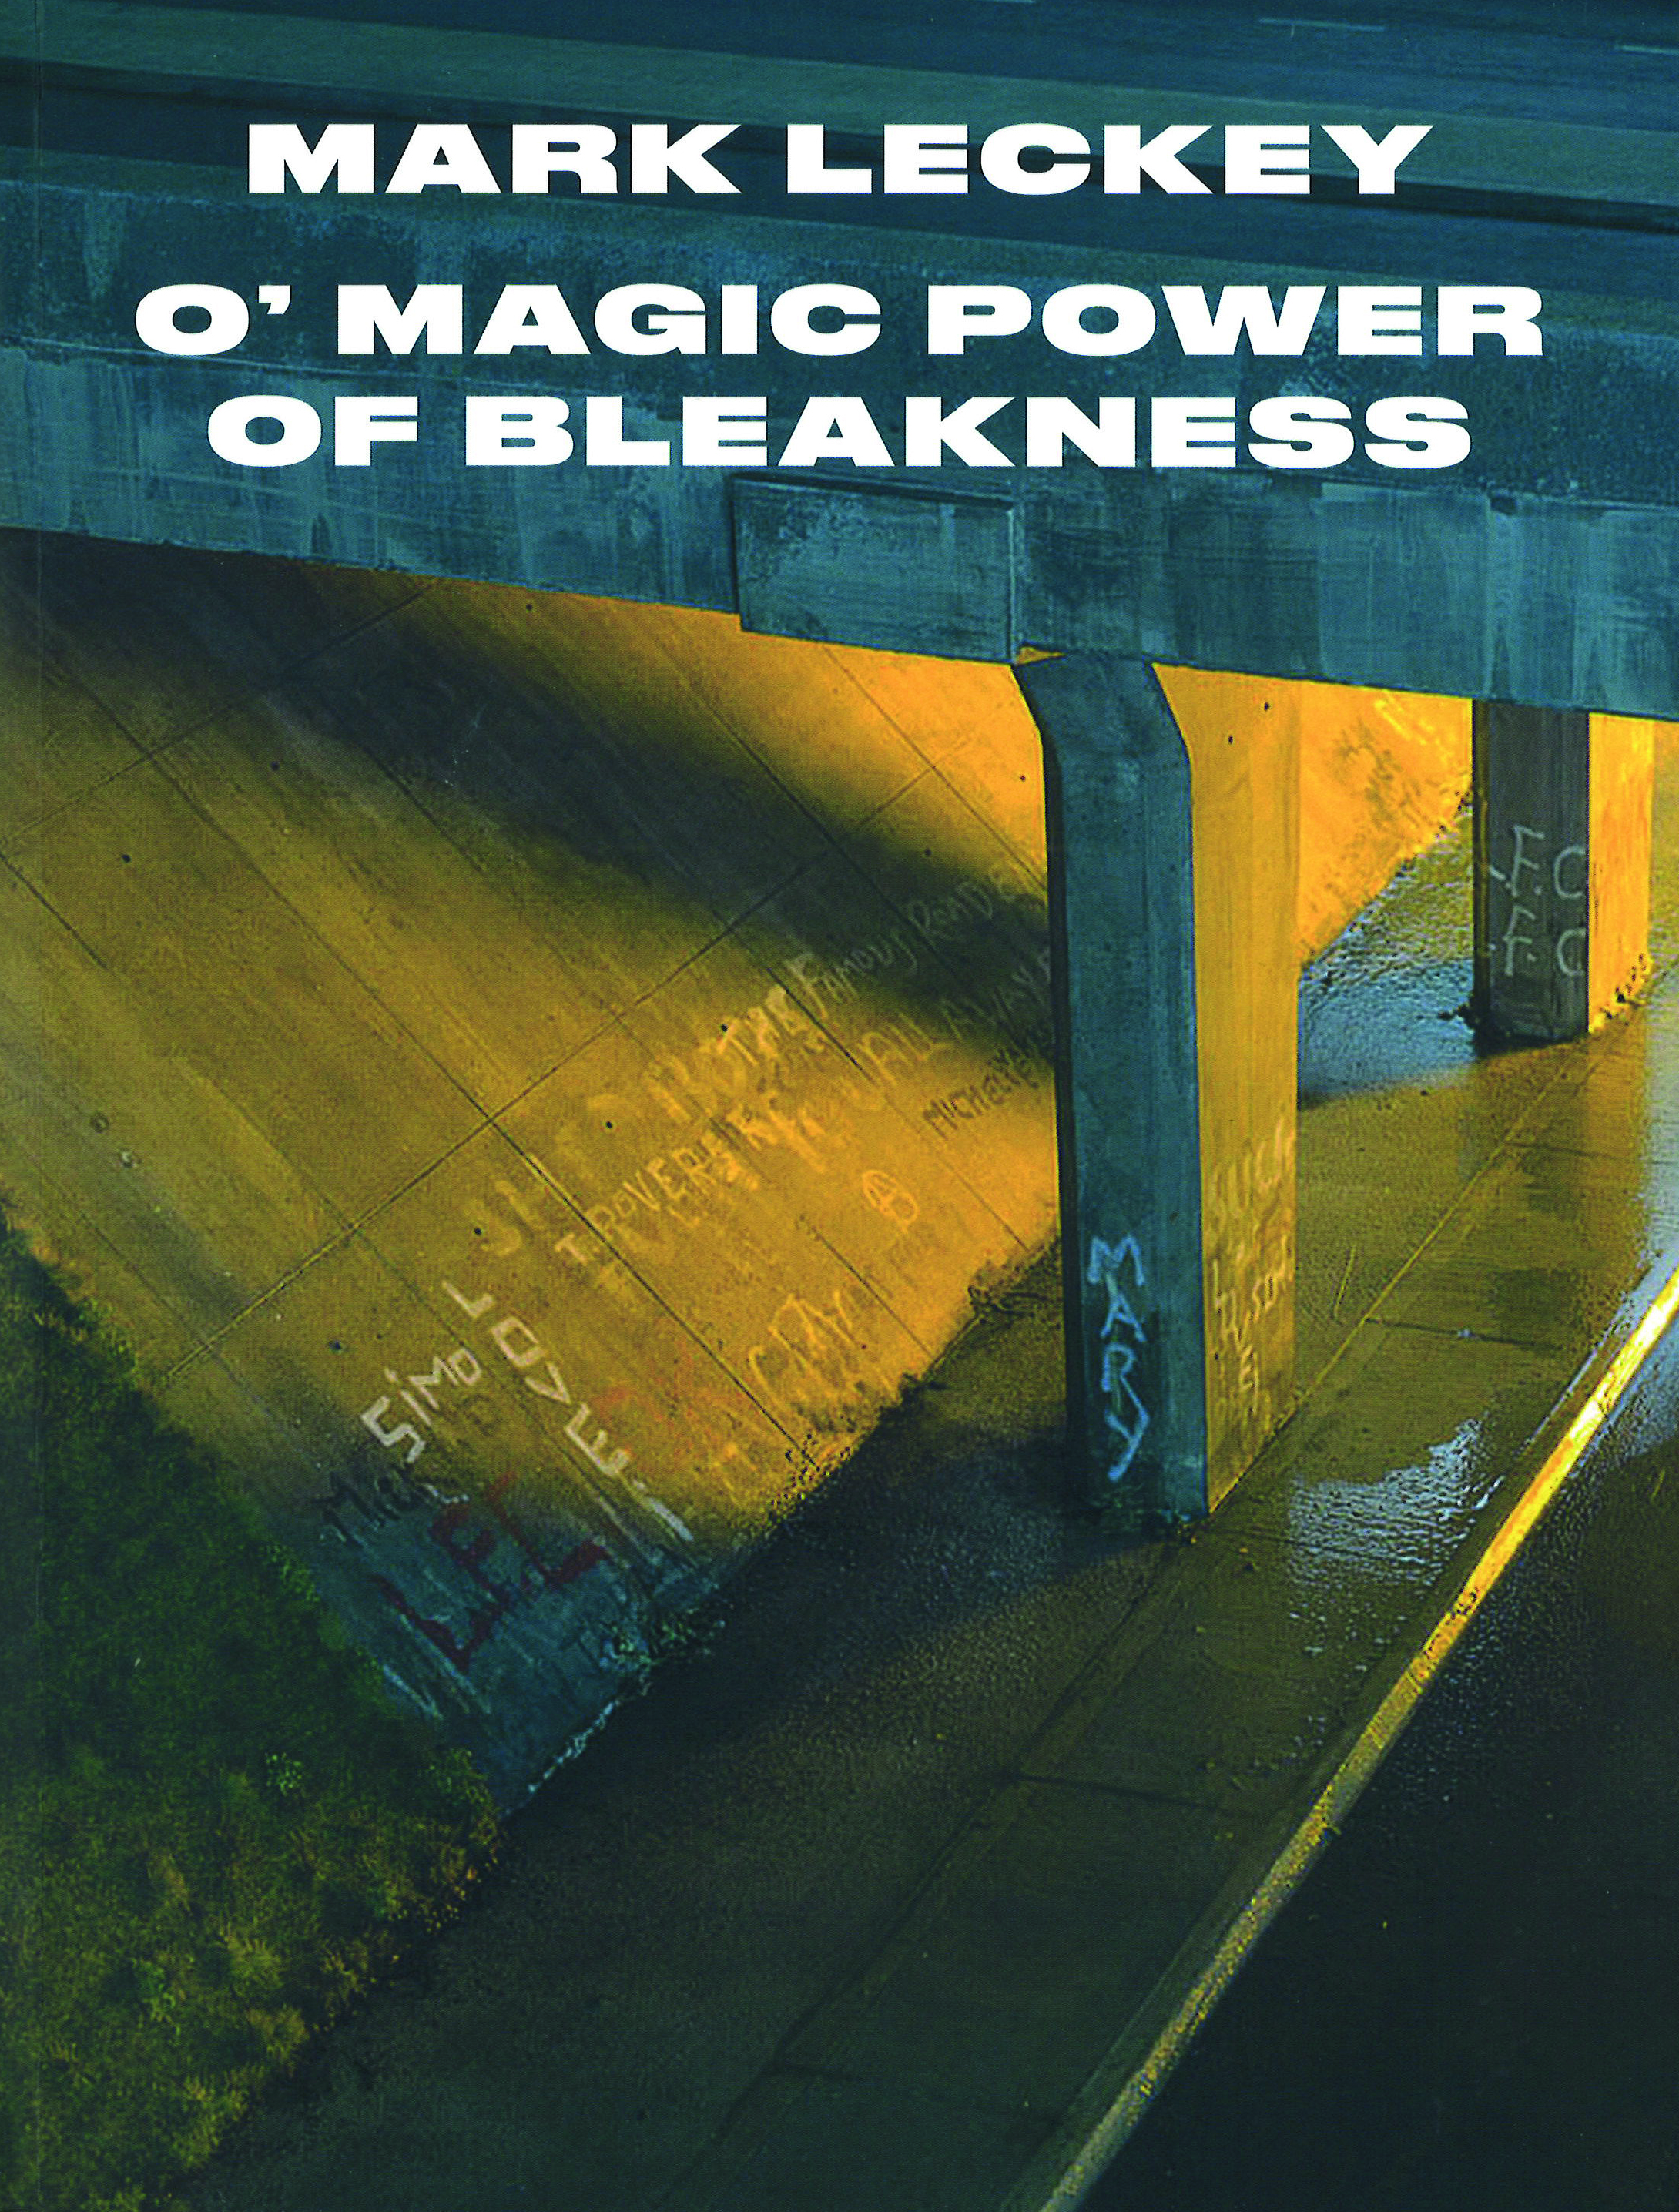 Mark Leckey – O'Magic Power of Bleakness 2019, 130 pages, Owrps, fully illustrated in color, 24,5 x 18,5 cm Euro 24,- – Comprehensive catalogue for Mark Leckey's solo exhibition at Tate Britain in London with contributions by Ed Atkins, Elsa Coustou, Roy Claire Potter, Clarrie Wallis and Catherine Wood.